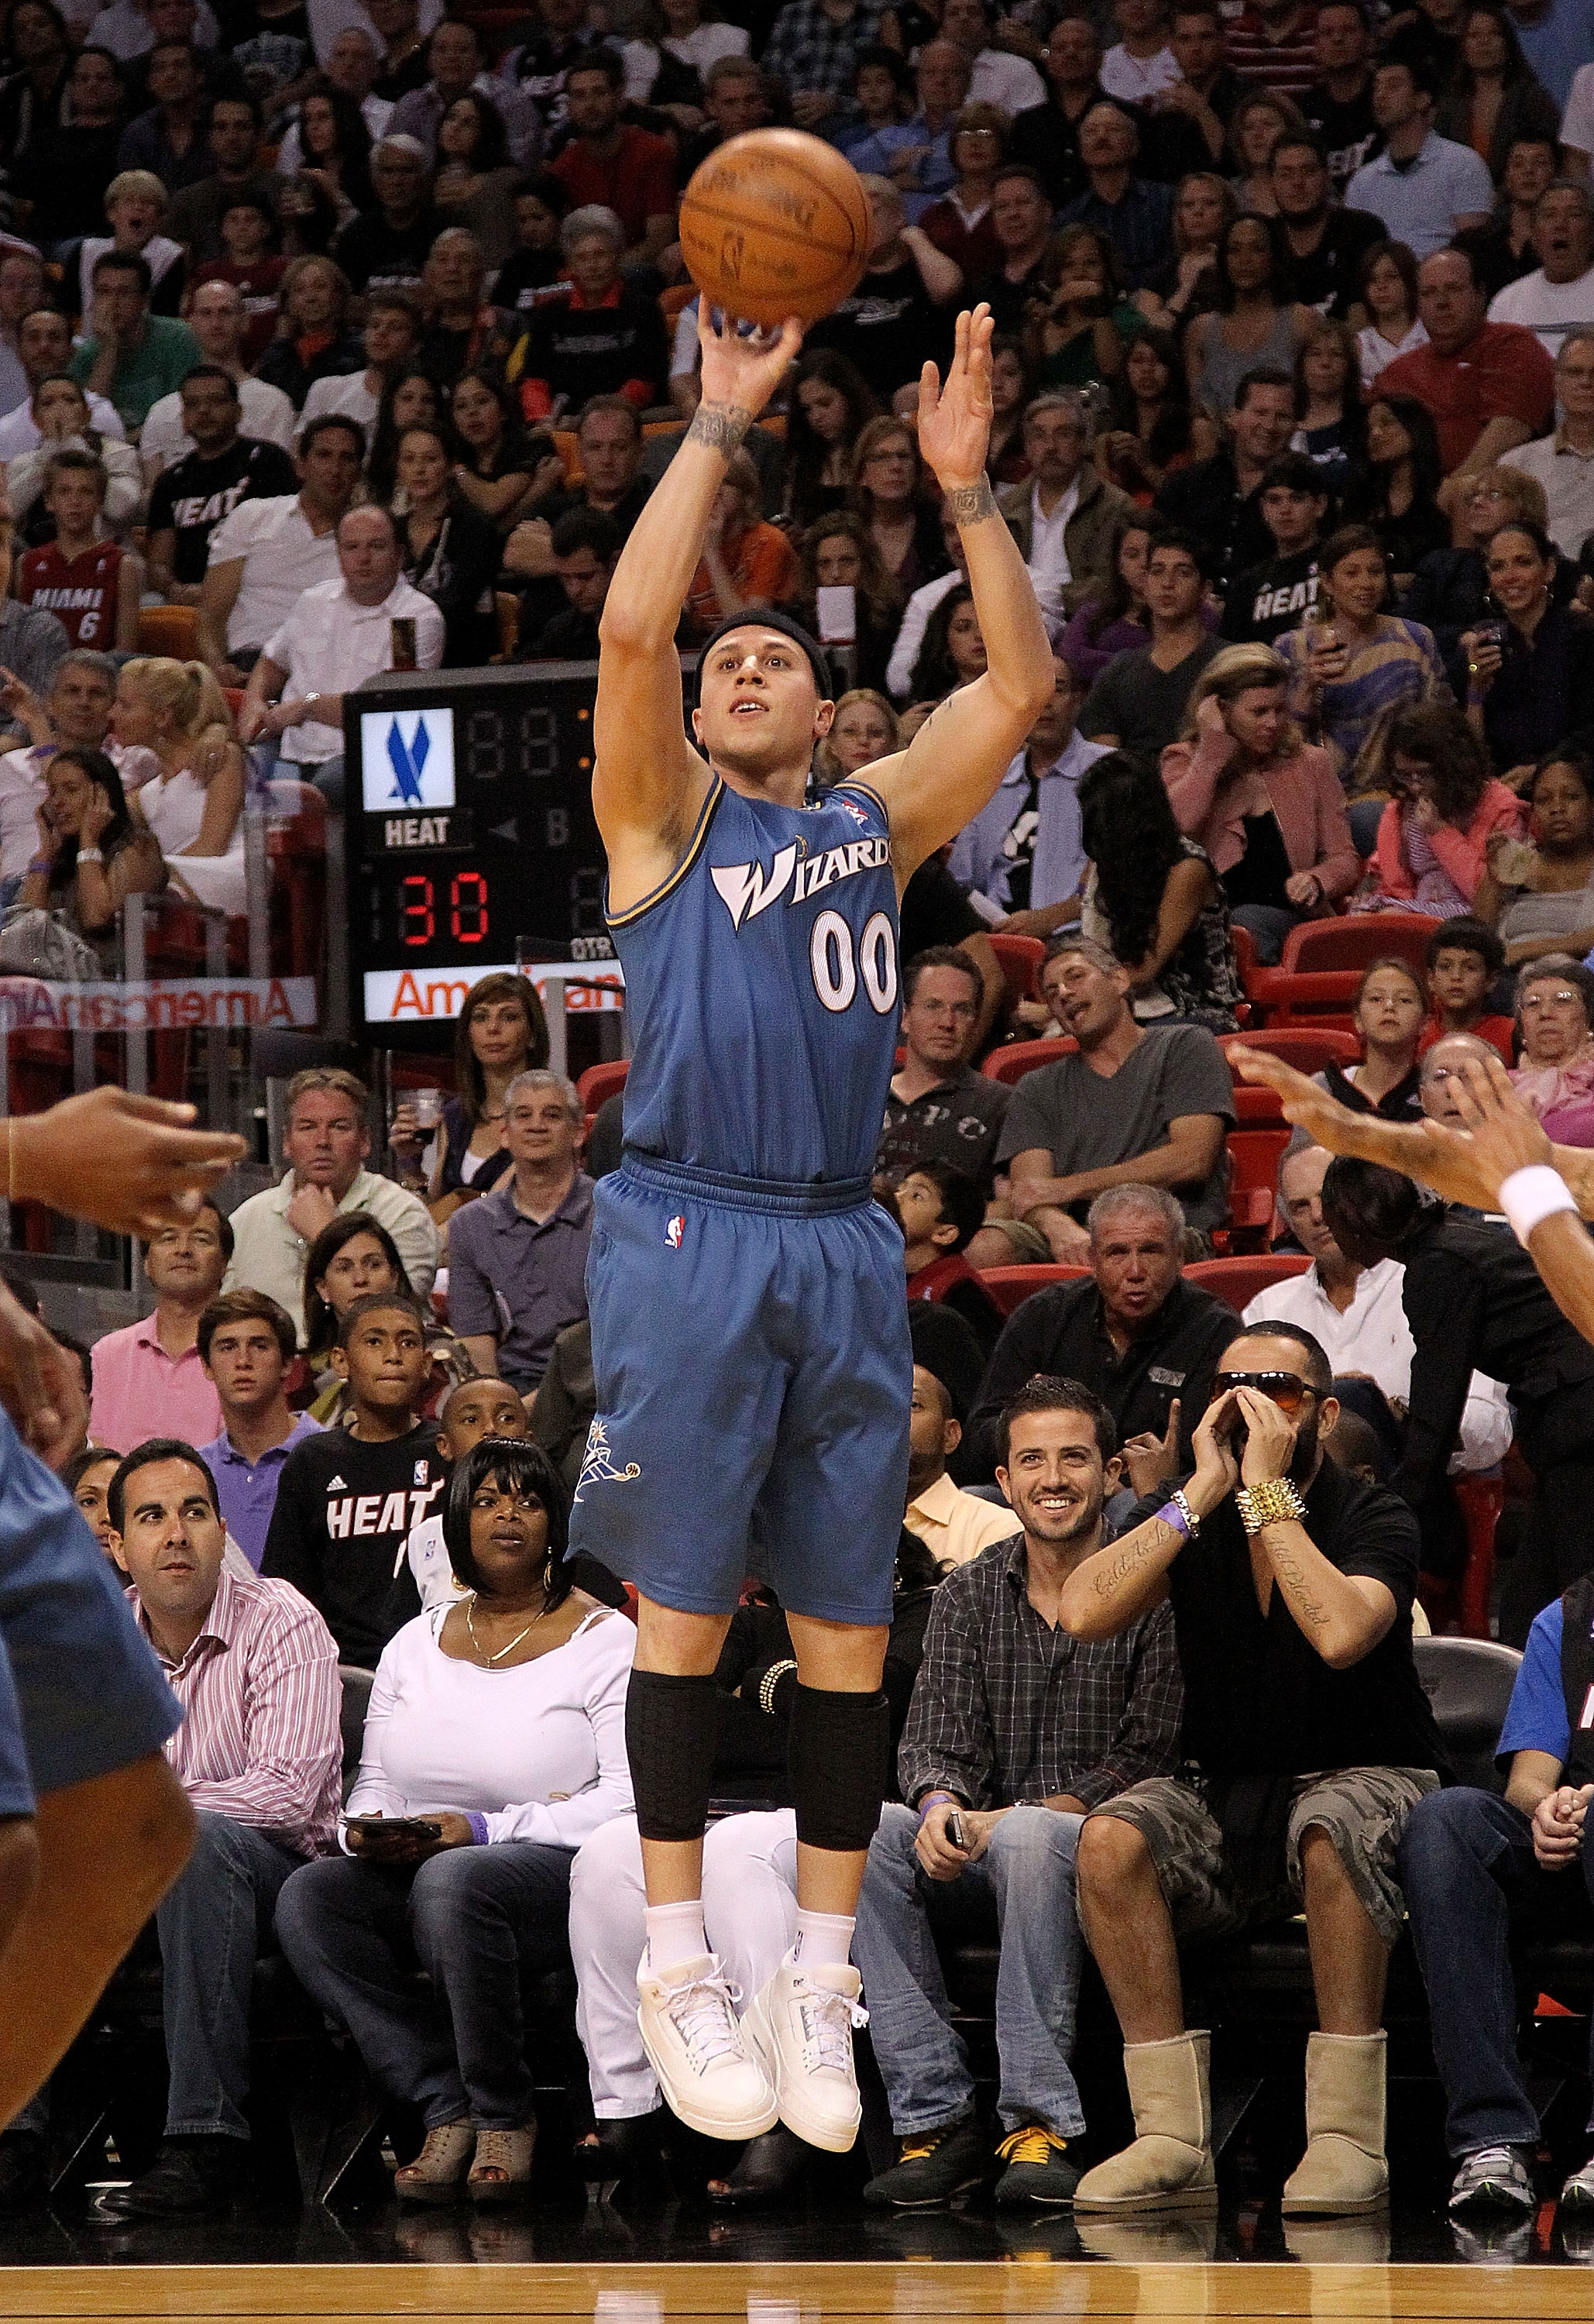 MIAMI, FL - FEBRUARY 25:  Mike Bibby #00 of the  Washington Wizards shoots a jump shot during a game against the Miami Heat  at American Airlines Arena on February 25, 2011 in Miami, Florida. NOTE TO USER: User expressly acknowledges and agrees that, by d